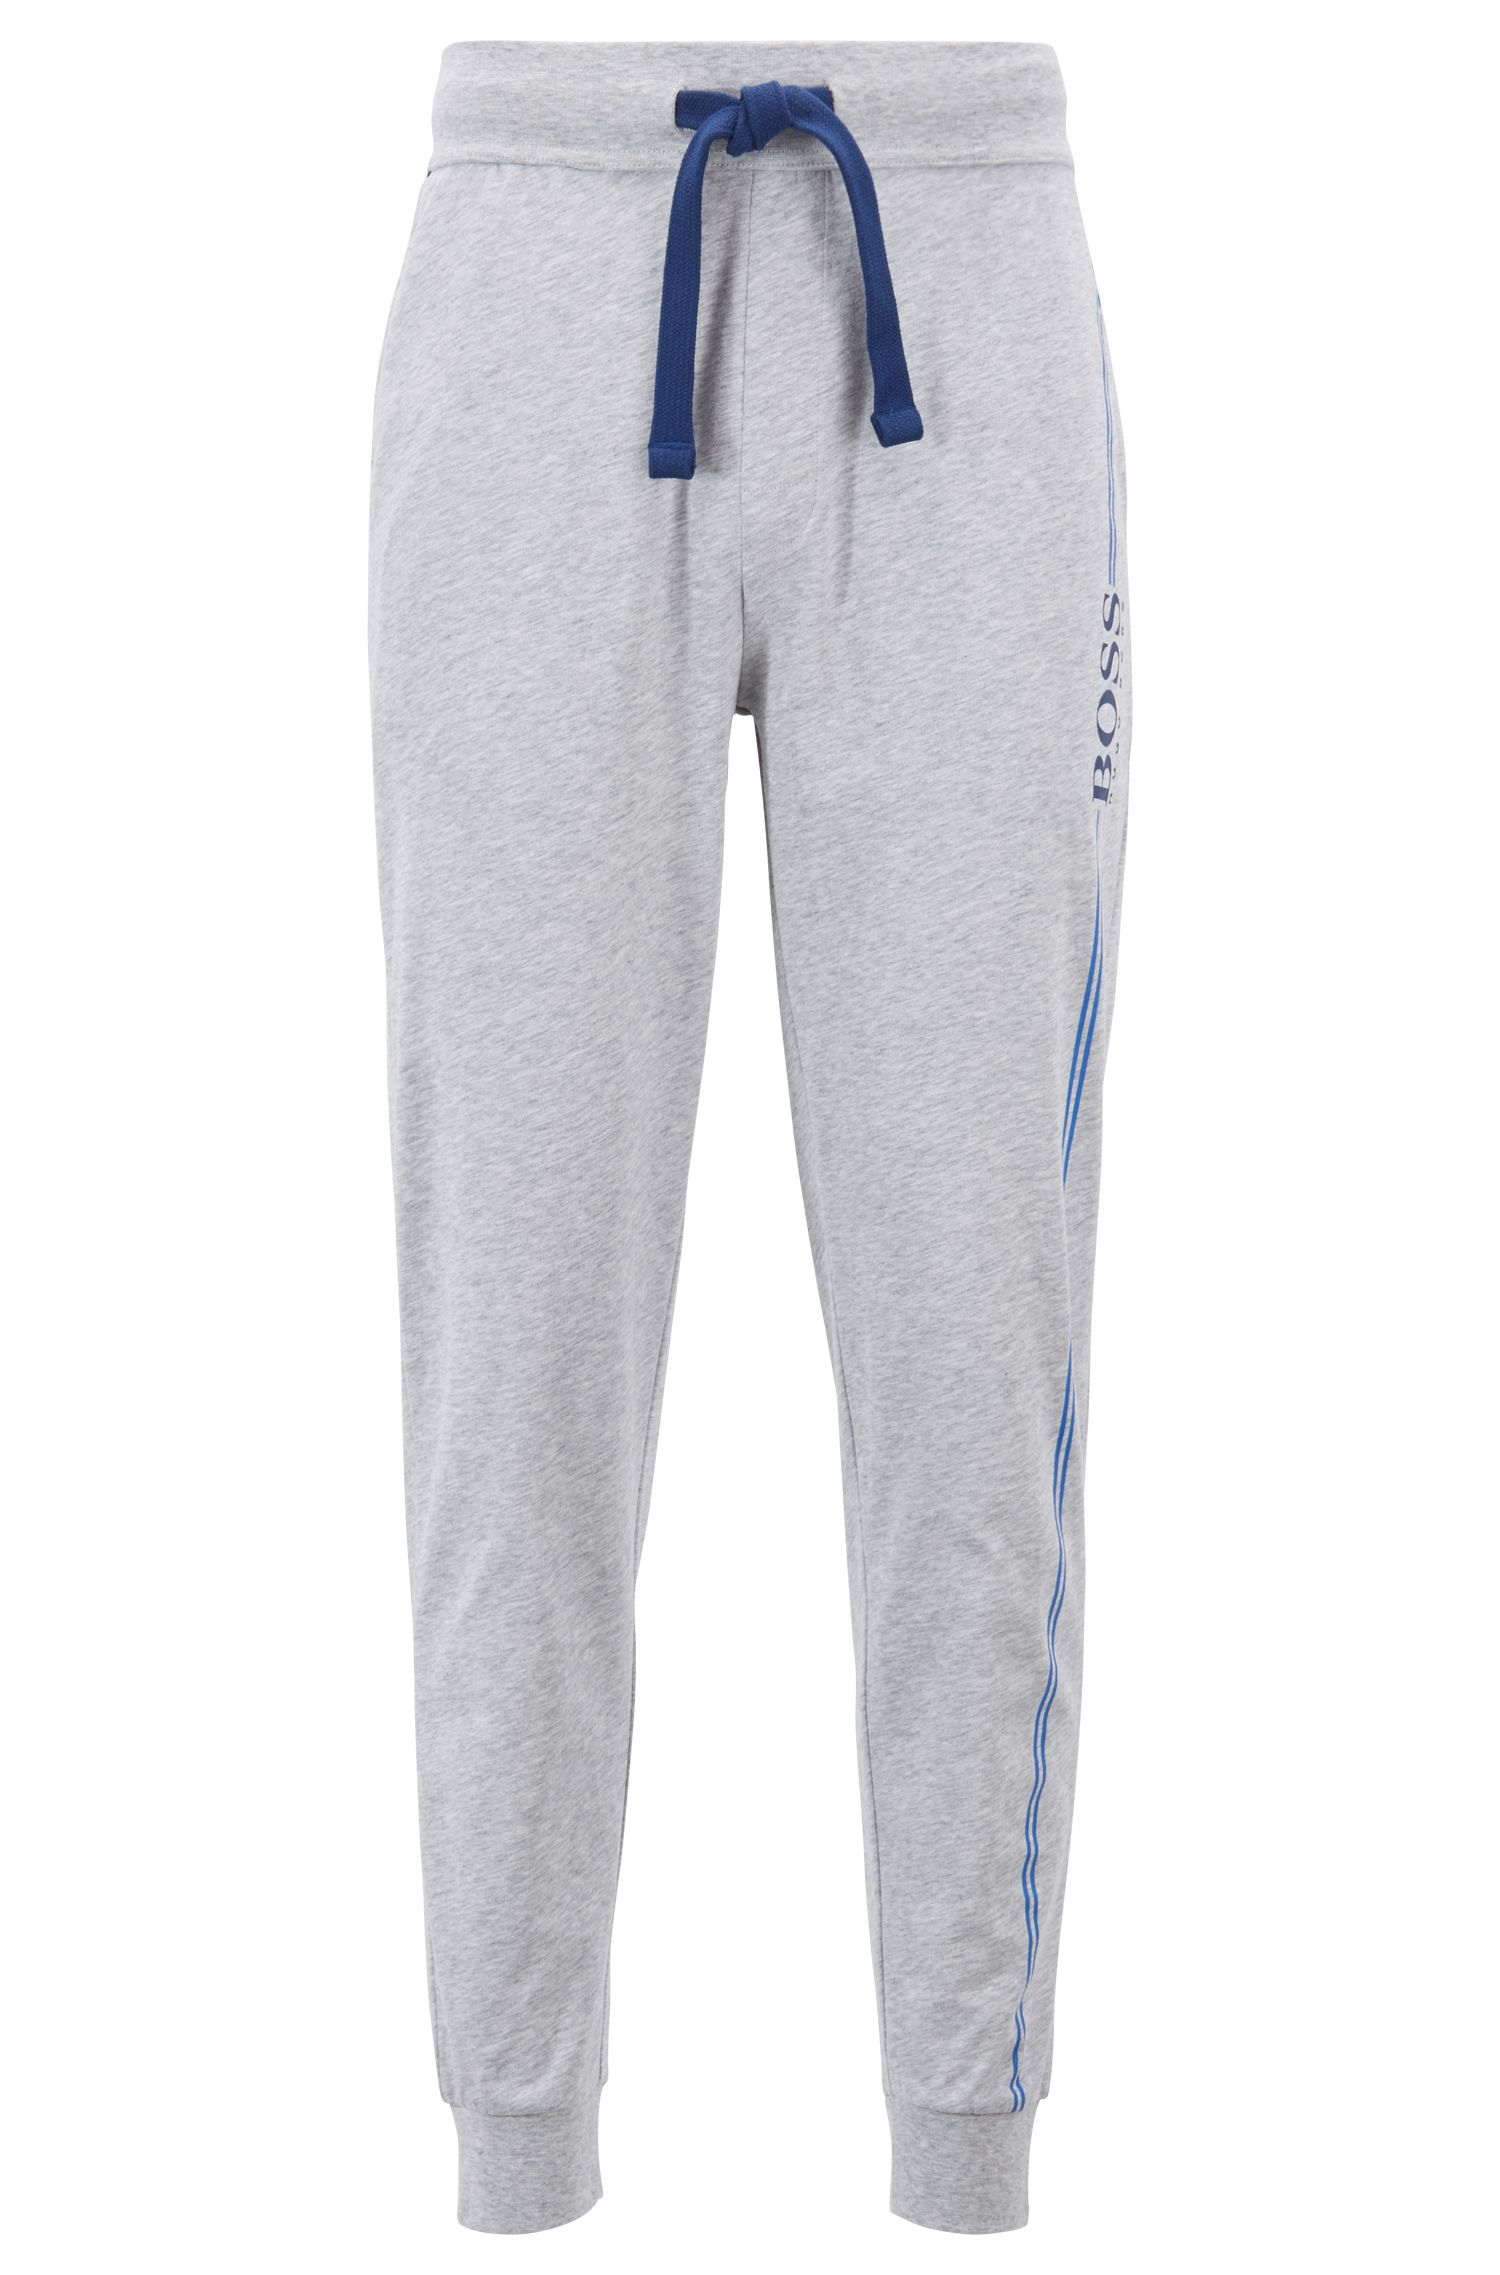 Cuffed-hem loungewear trousers in cotton with logo print, Grey